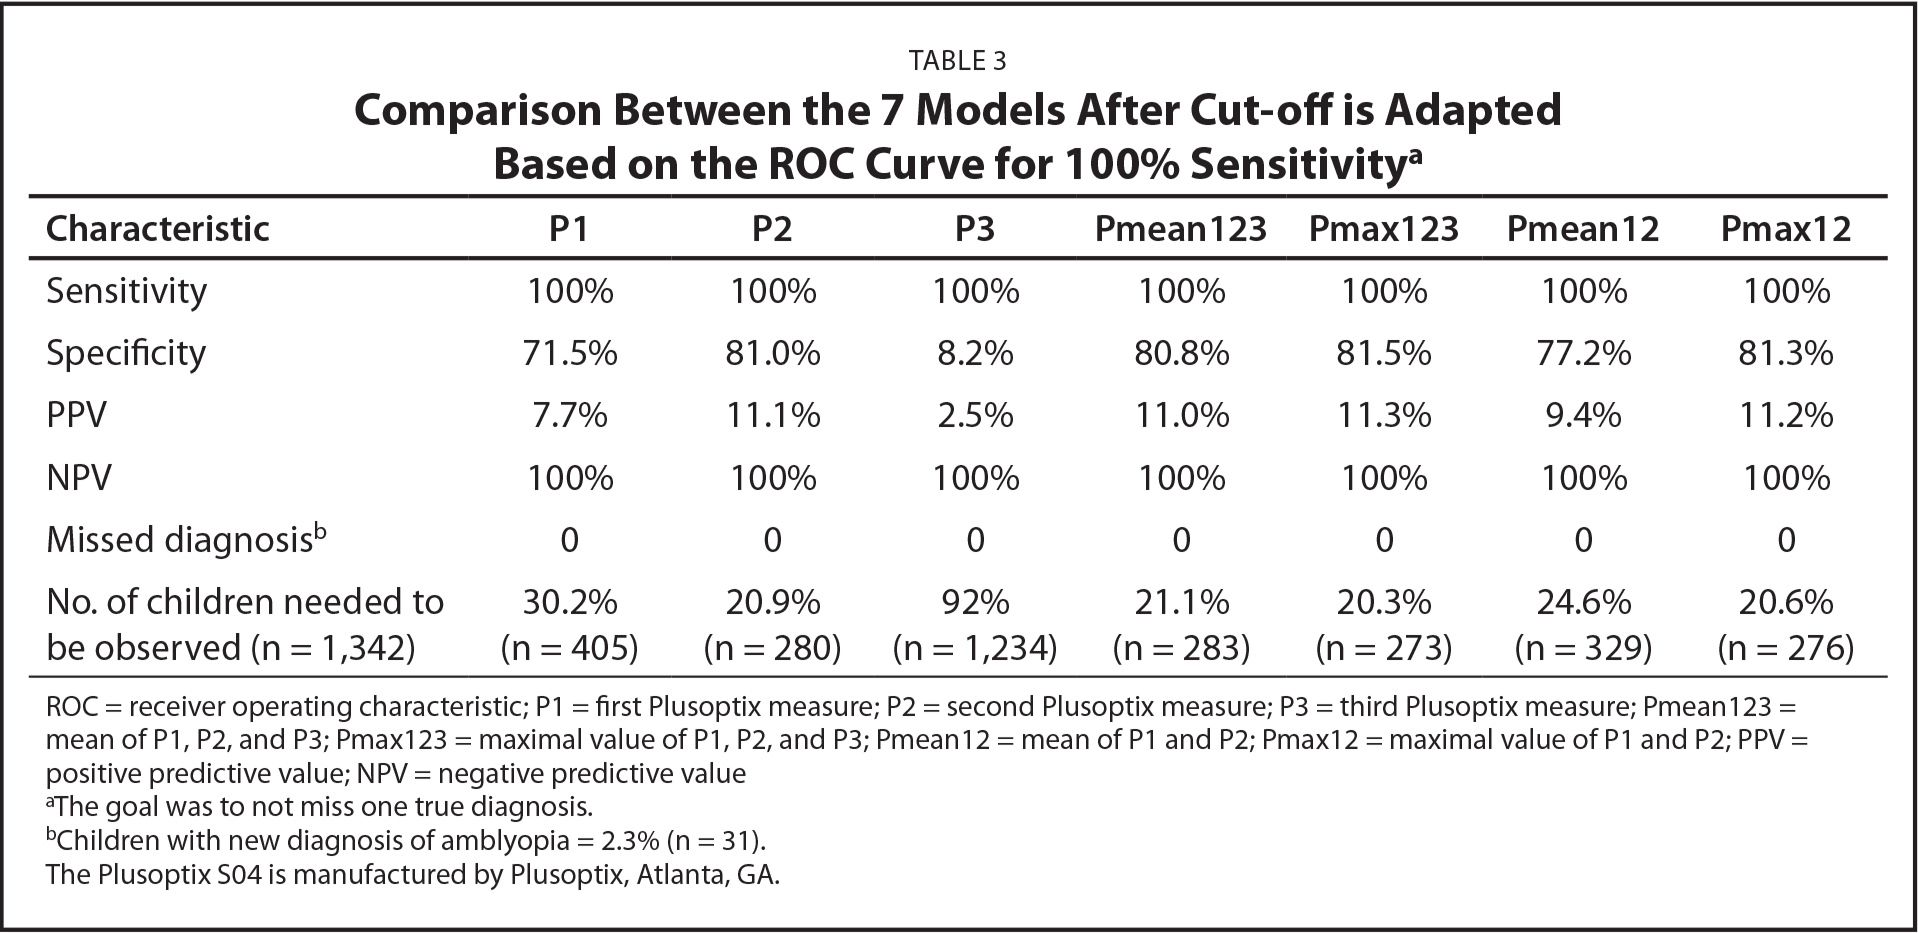 Comparison Between the 7 Models After Cut-off is Adapted Based on the ROC Curve for 100% Sensitivitya